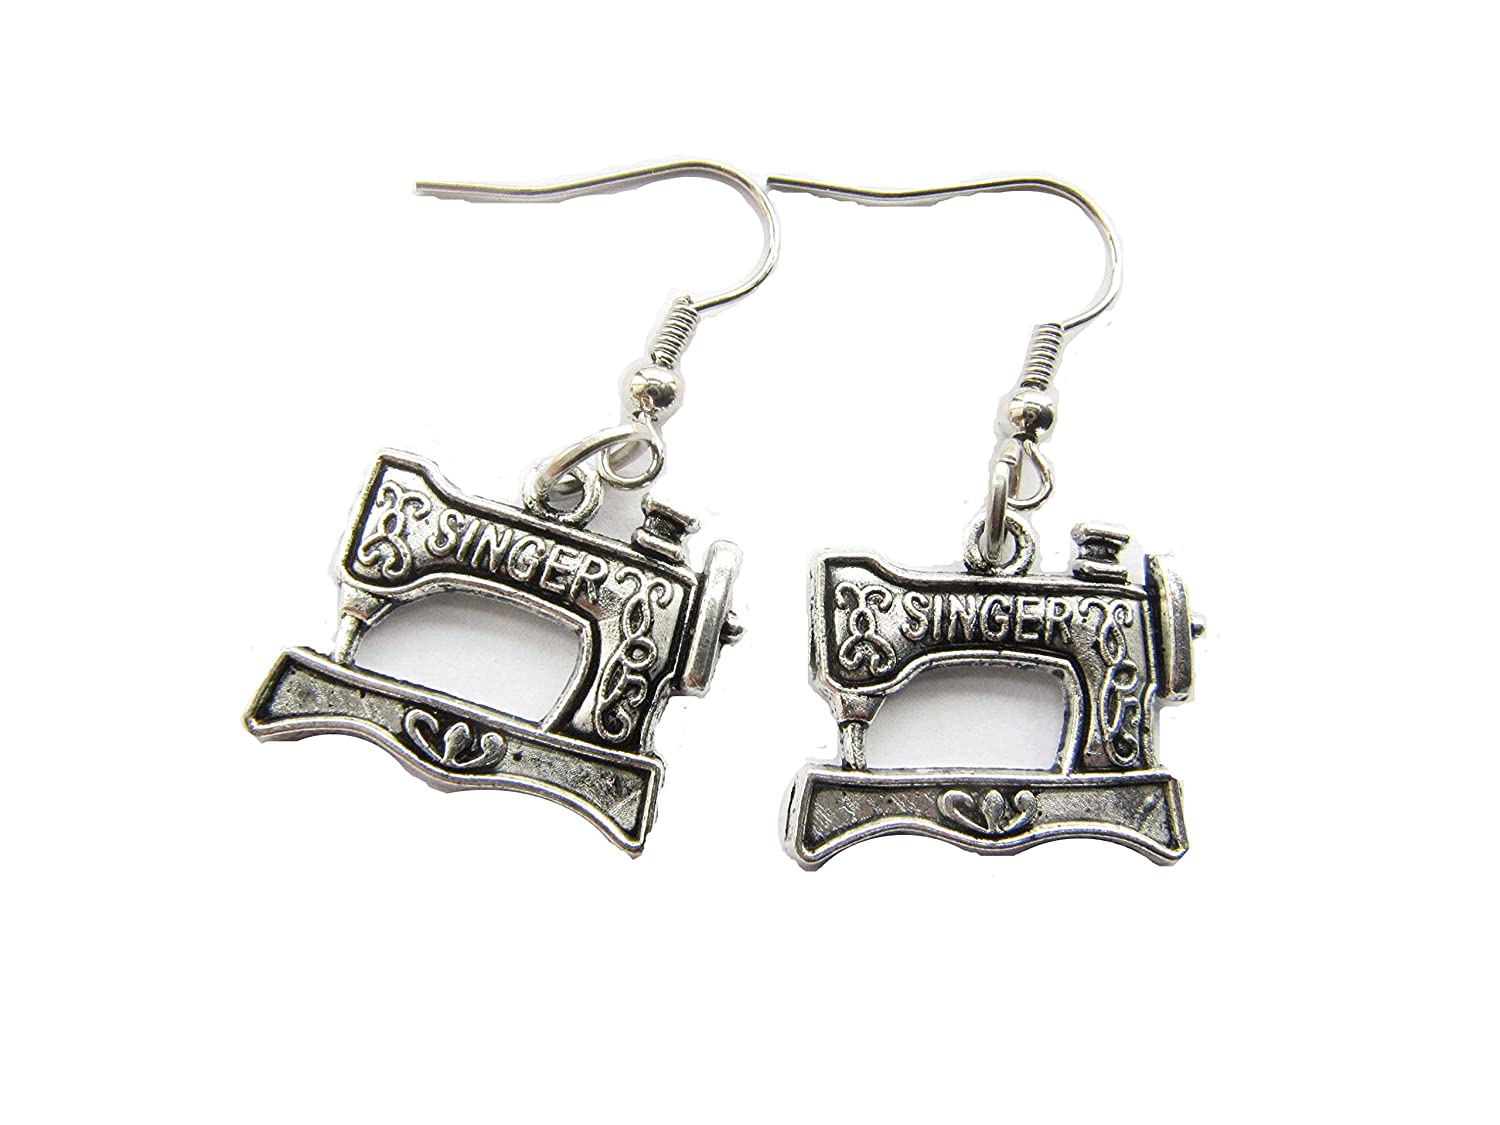 Sewing Maching Vintage Inspired Charm Earrings,ancient silver Sewing Machine Seamstress Jewelry Quilters Gift